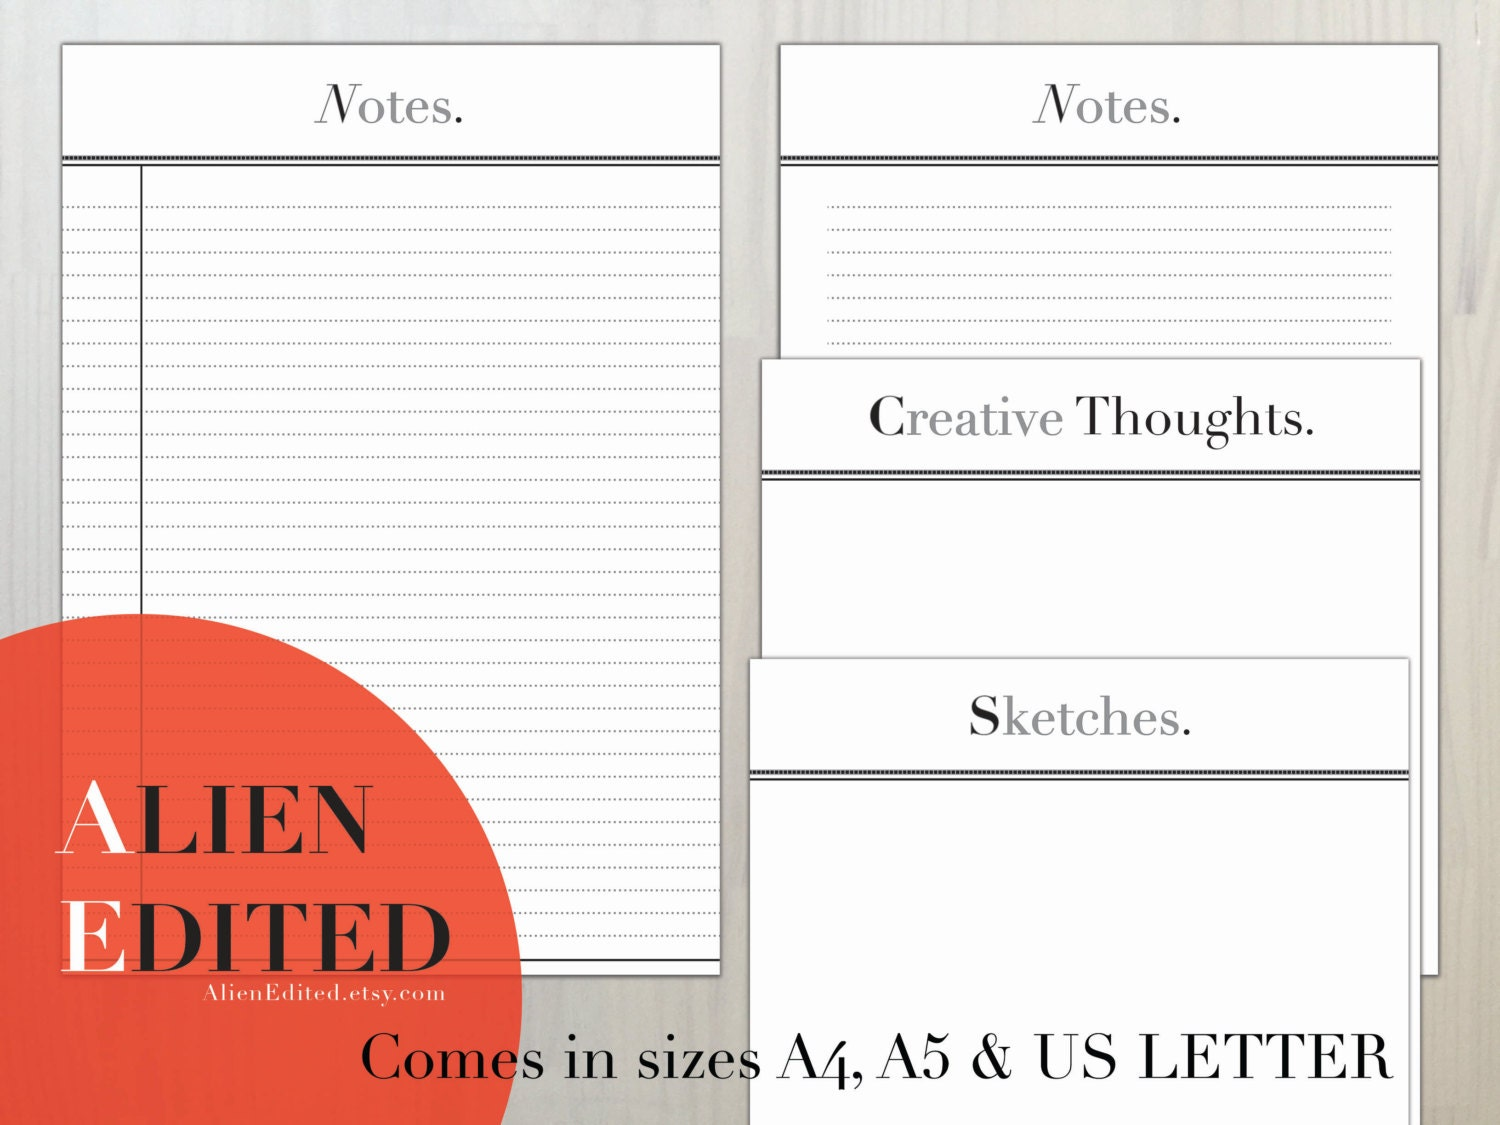 Notes A4 A5 US LETTER Lined Paper Notepad Writing Paper – Lined Letter Paper